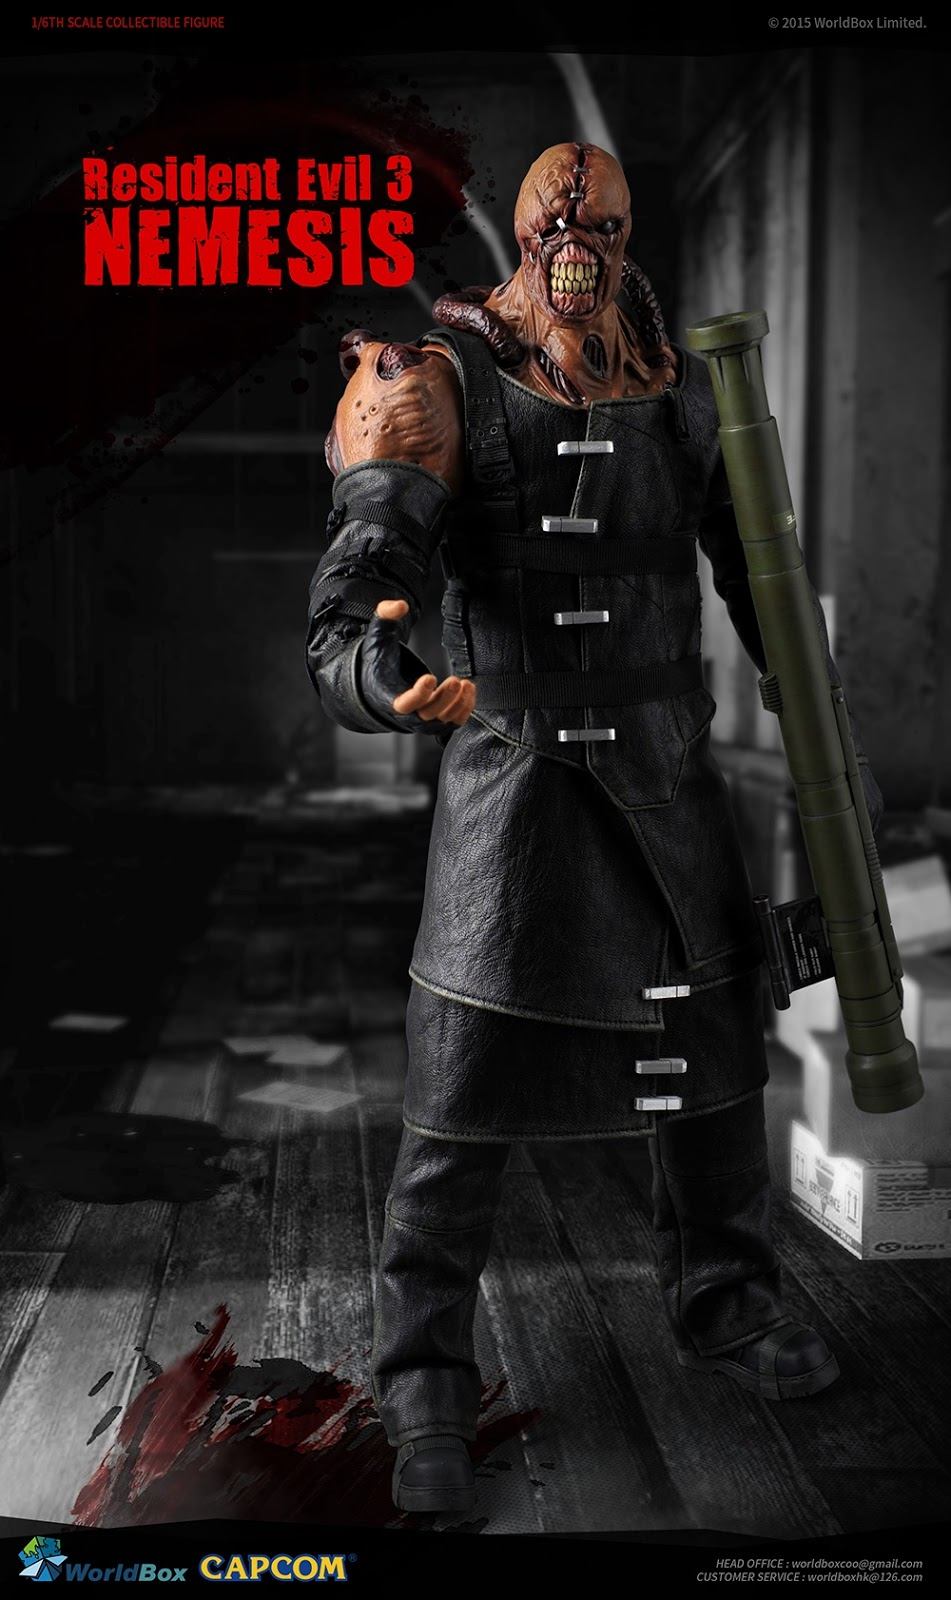 """toyhaven: Check out this upcoming Worldbox """"Resident Evil ..."""